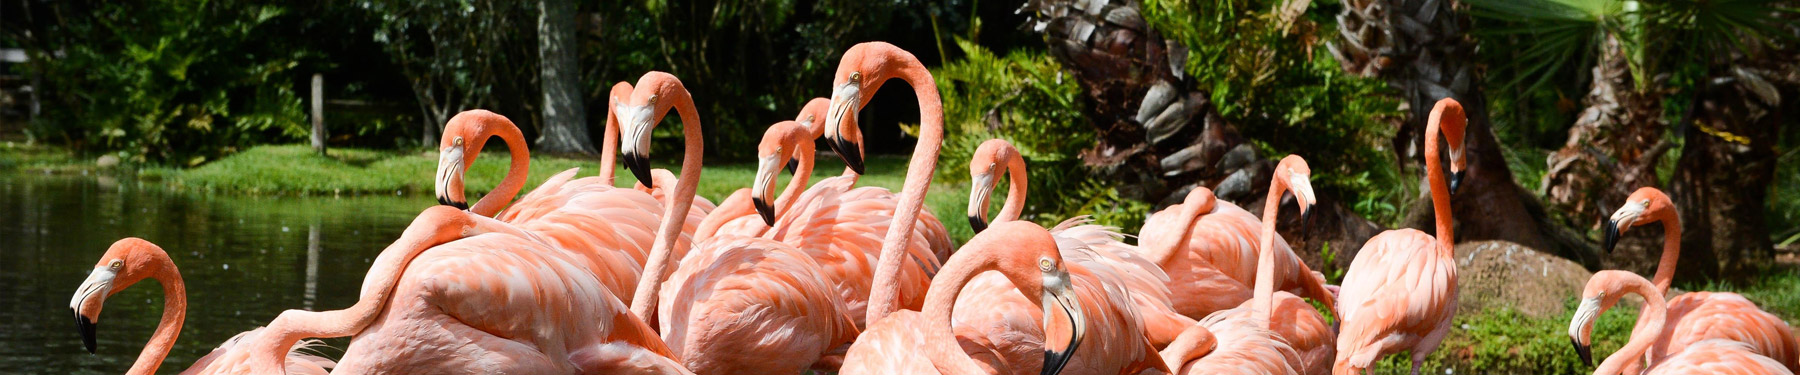 A flock of flamingos exploring one of Sarasota's tropical locales